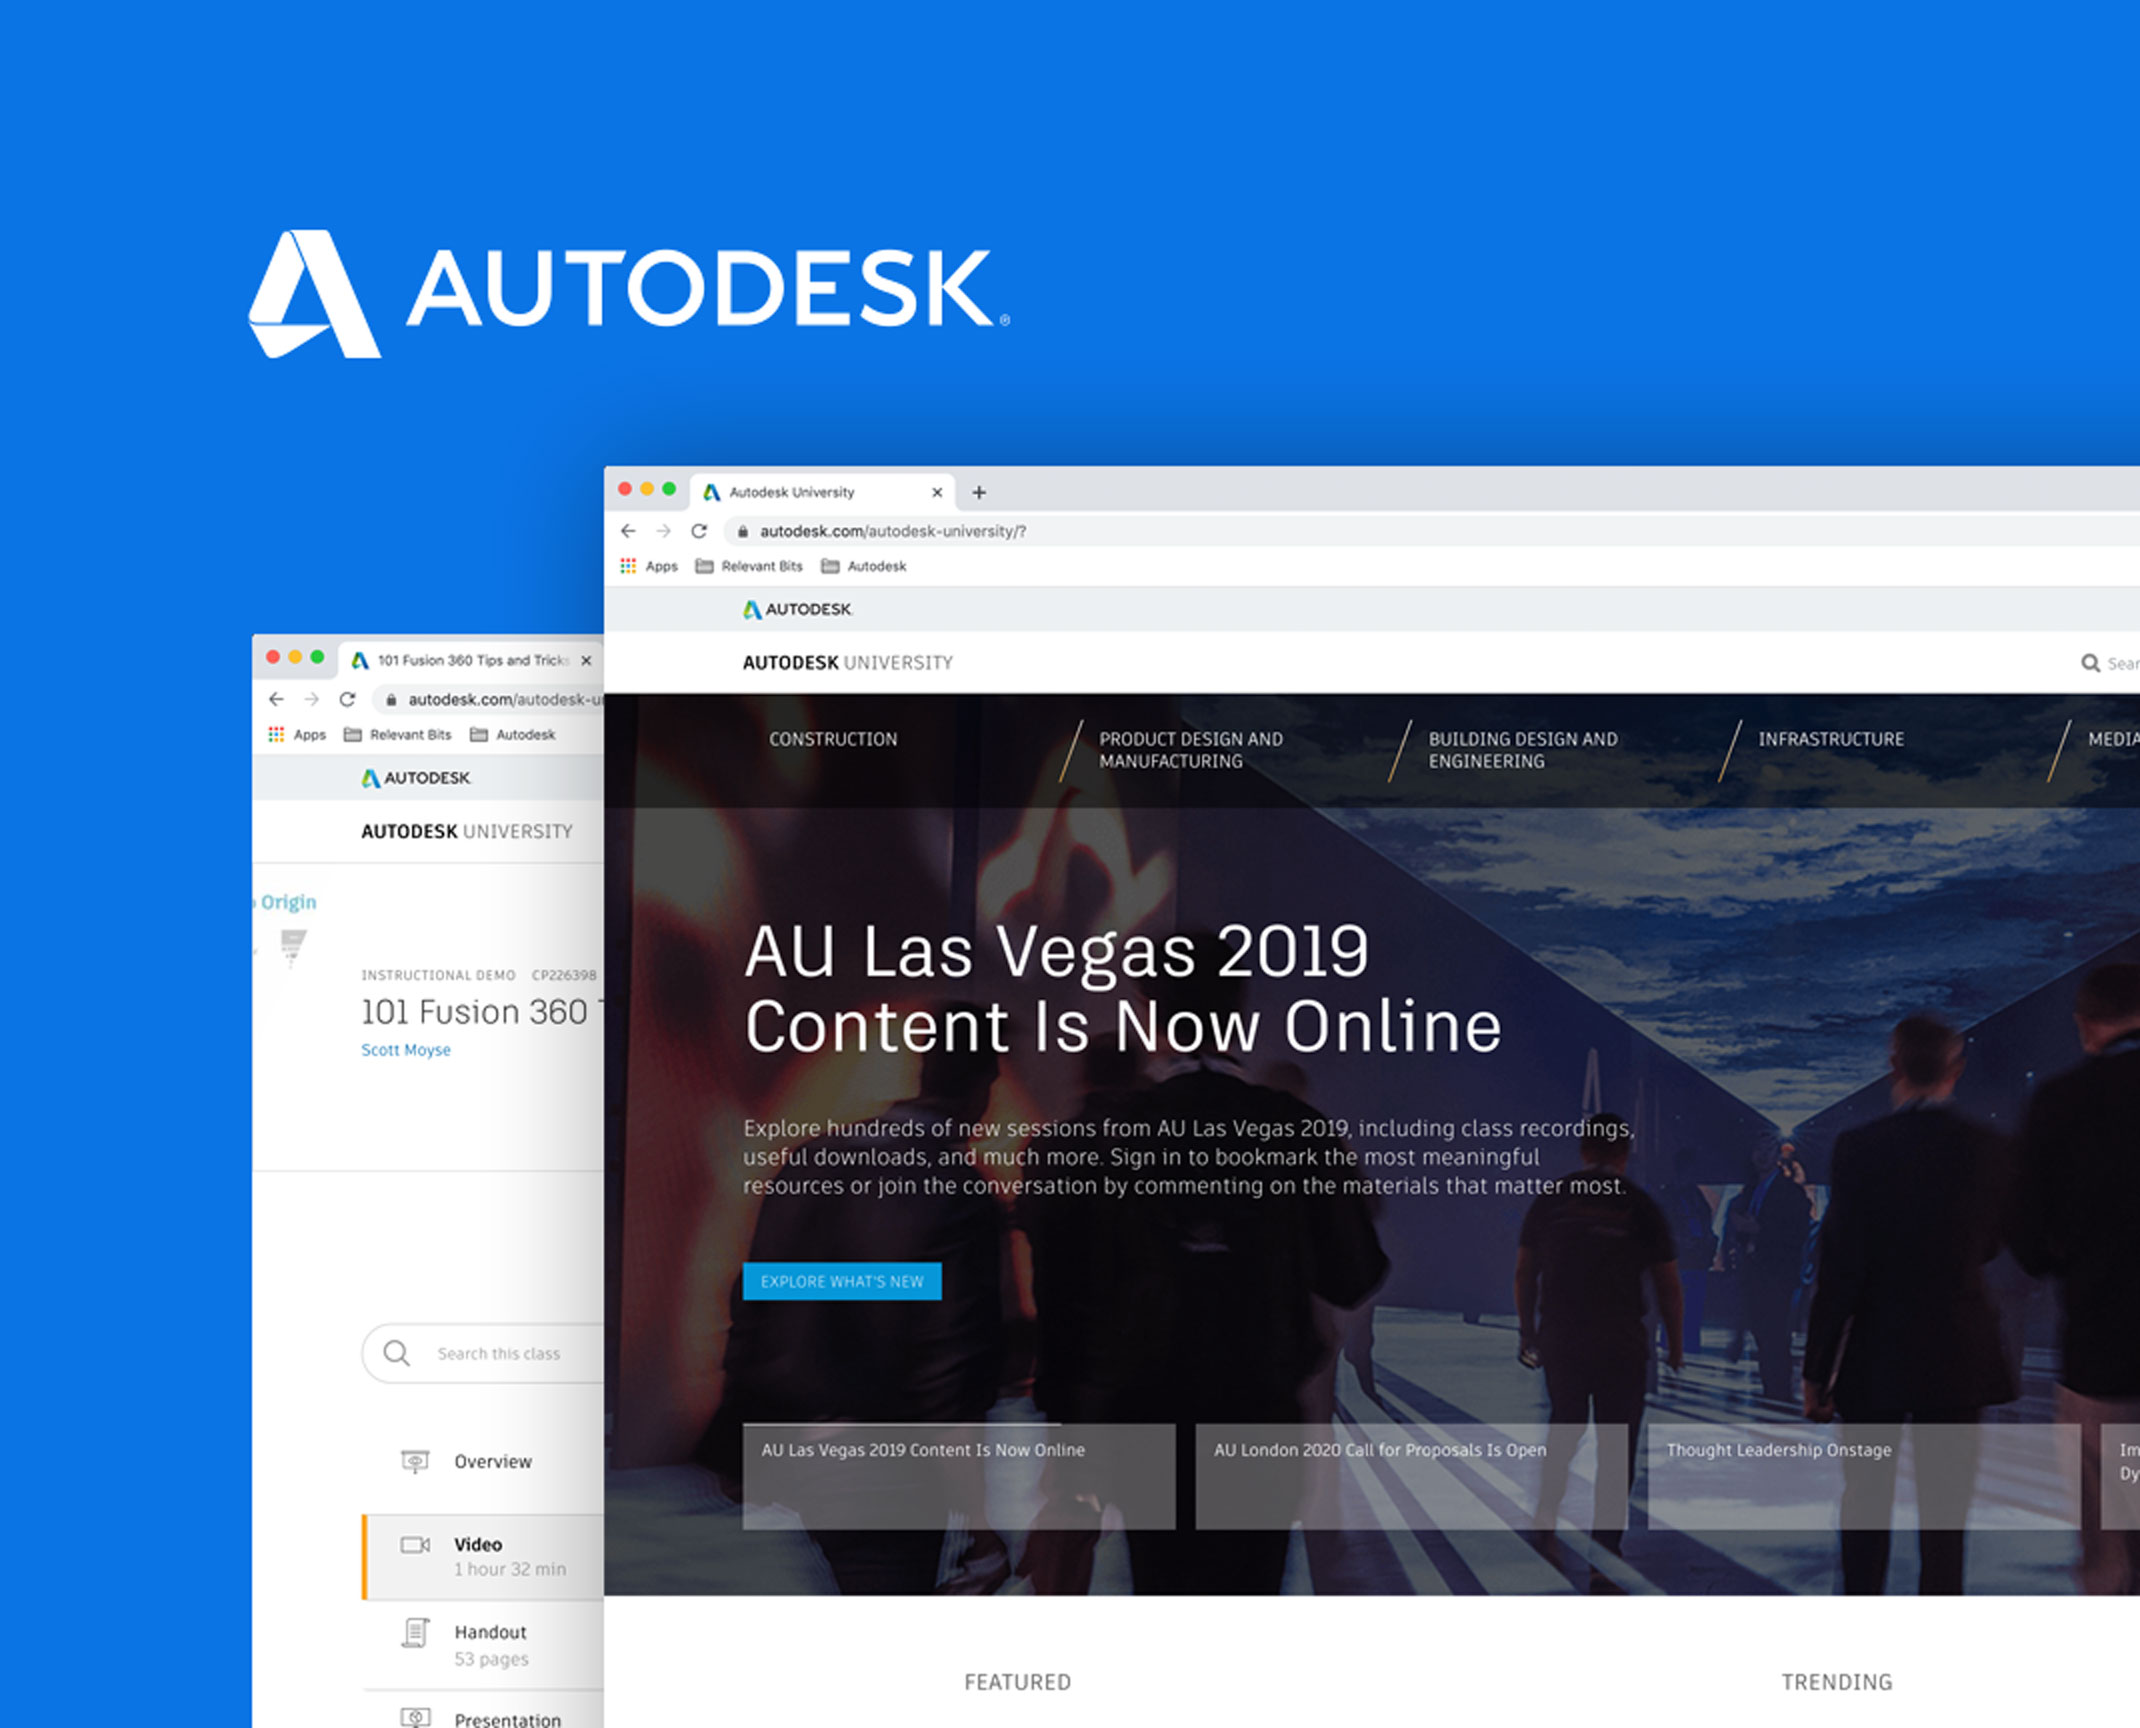 Autodesk - Personalization and Performance